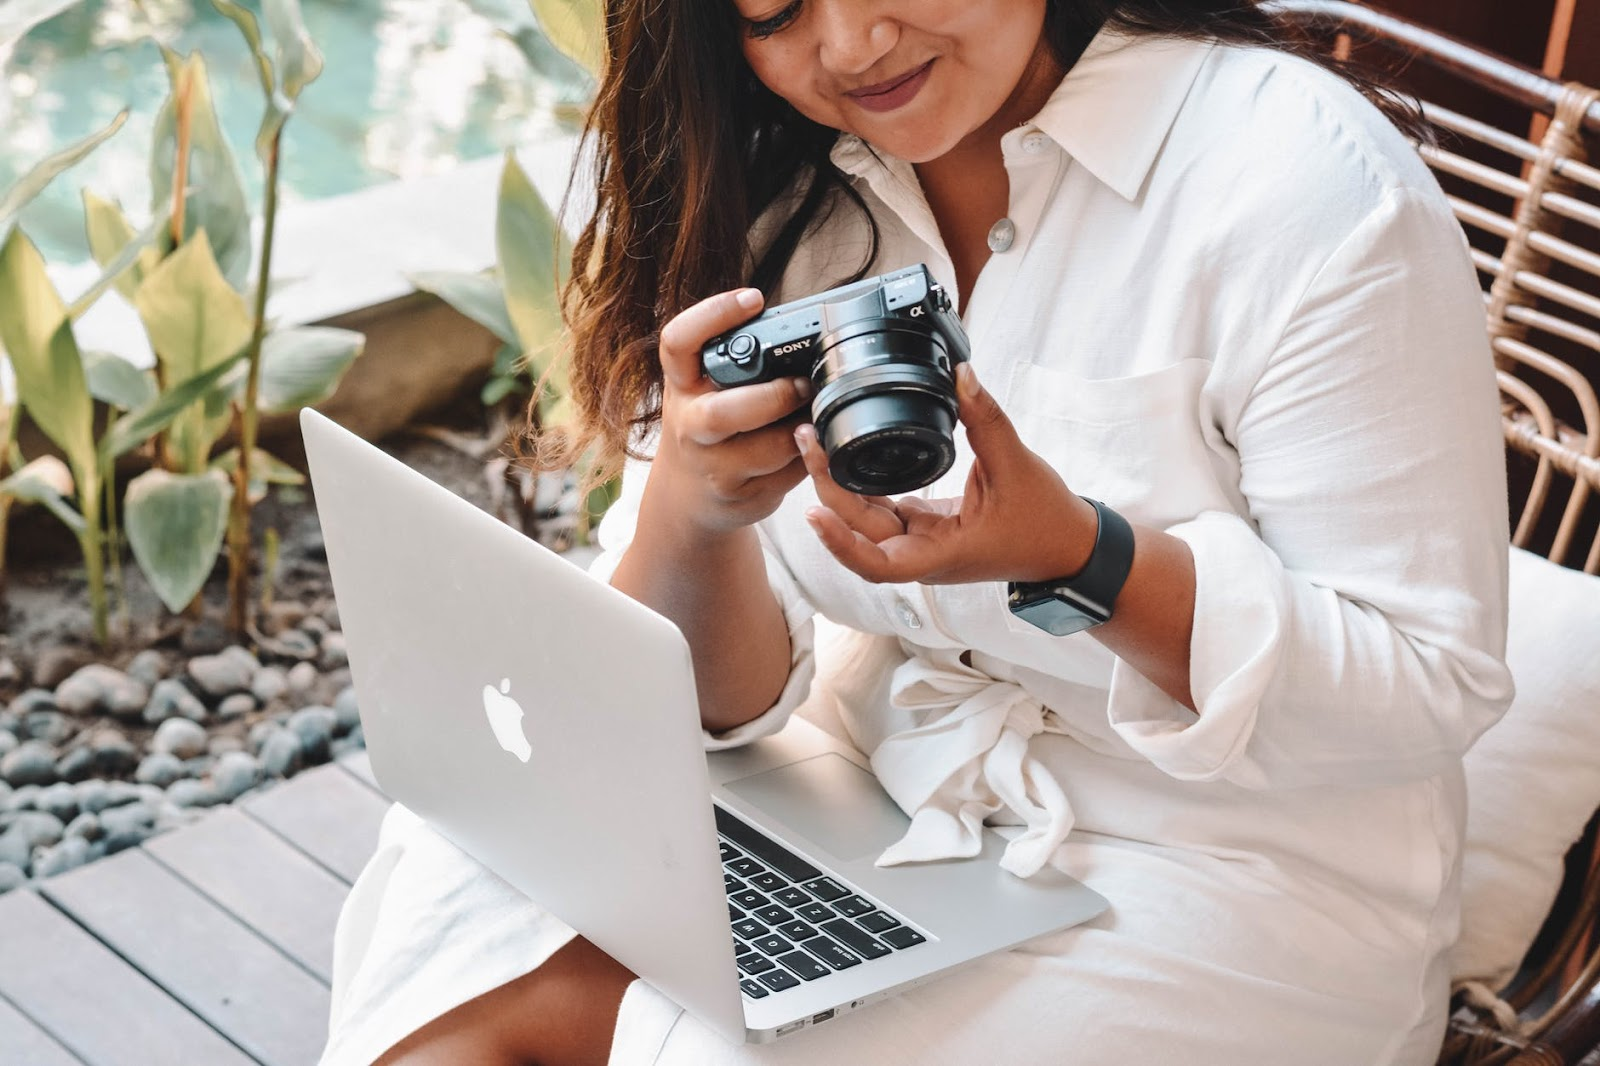 woman holding camera with laptop